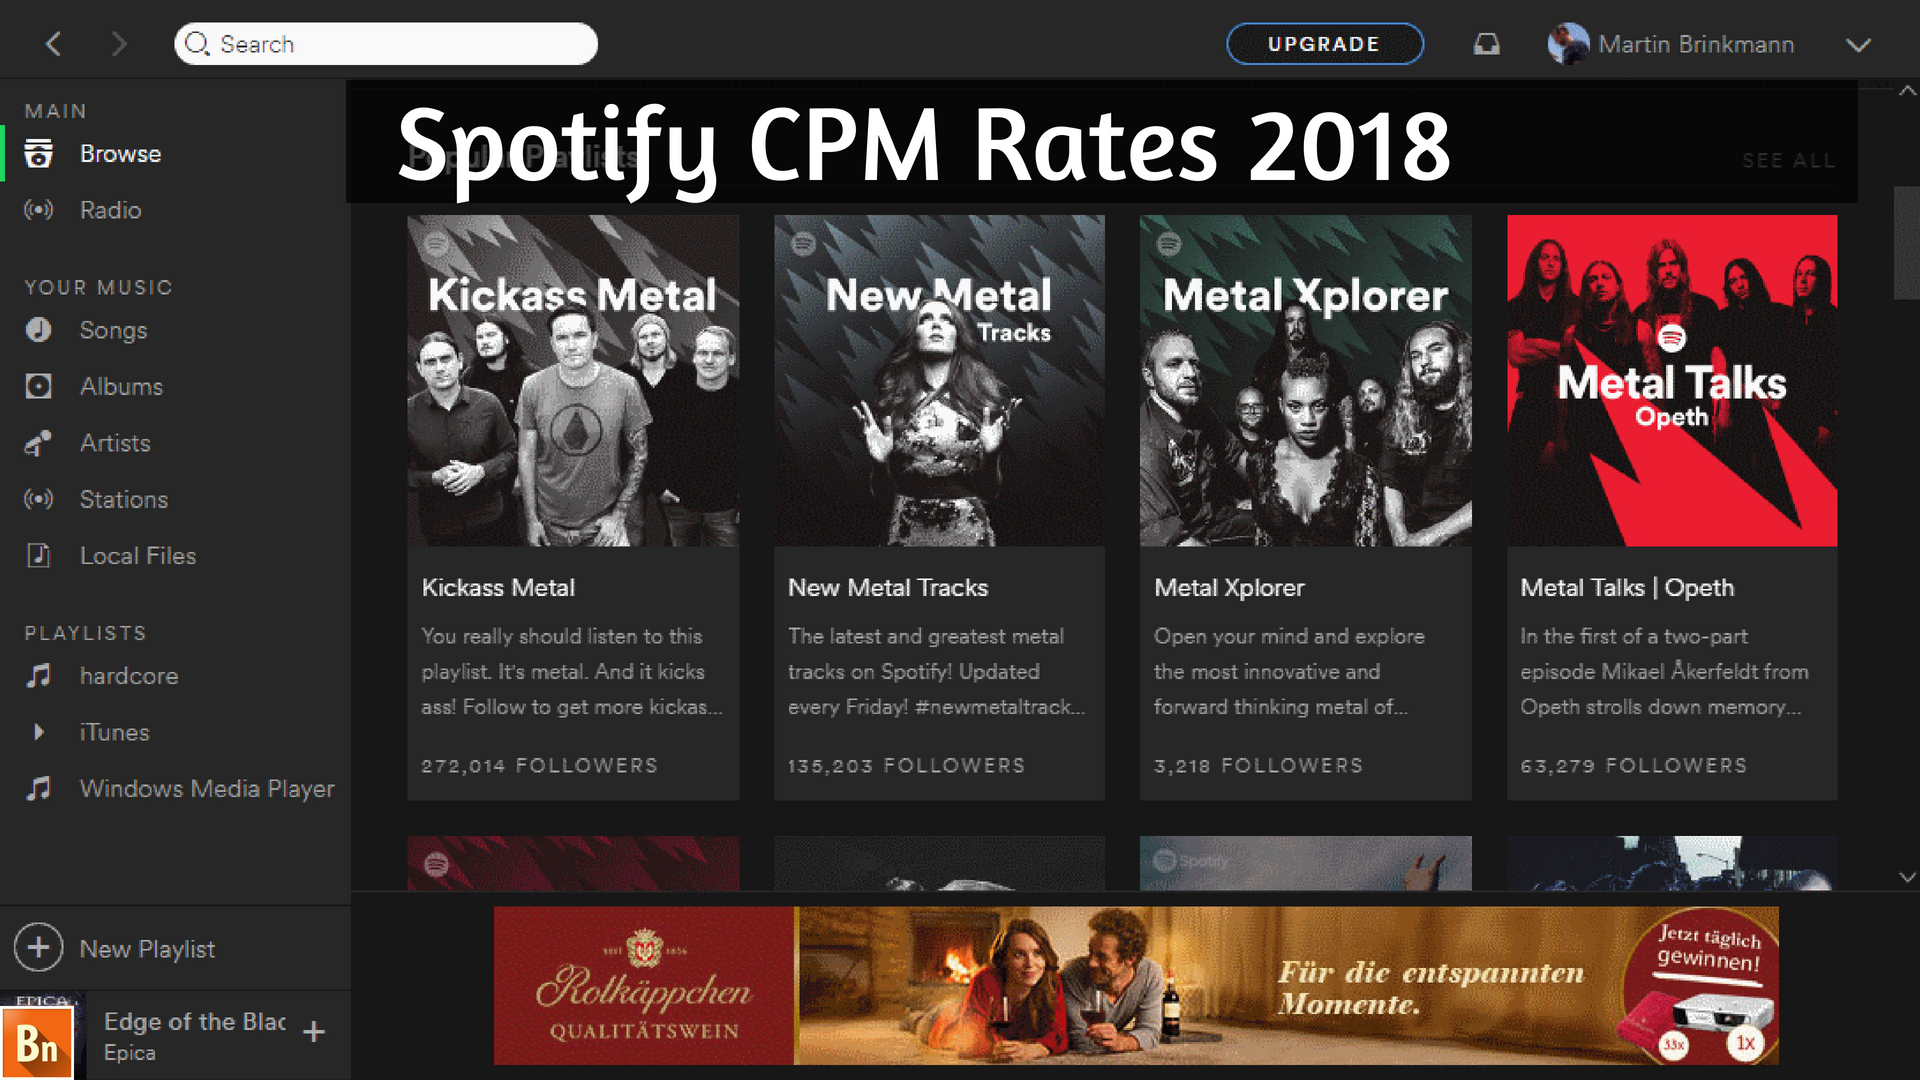 Spotify CPM Rates 2018